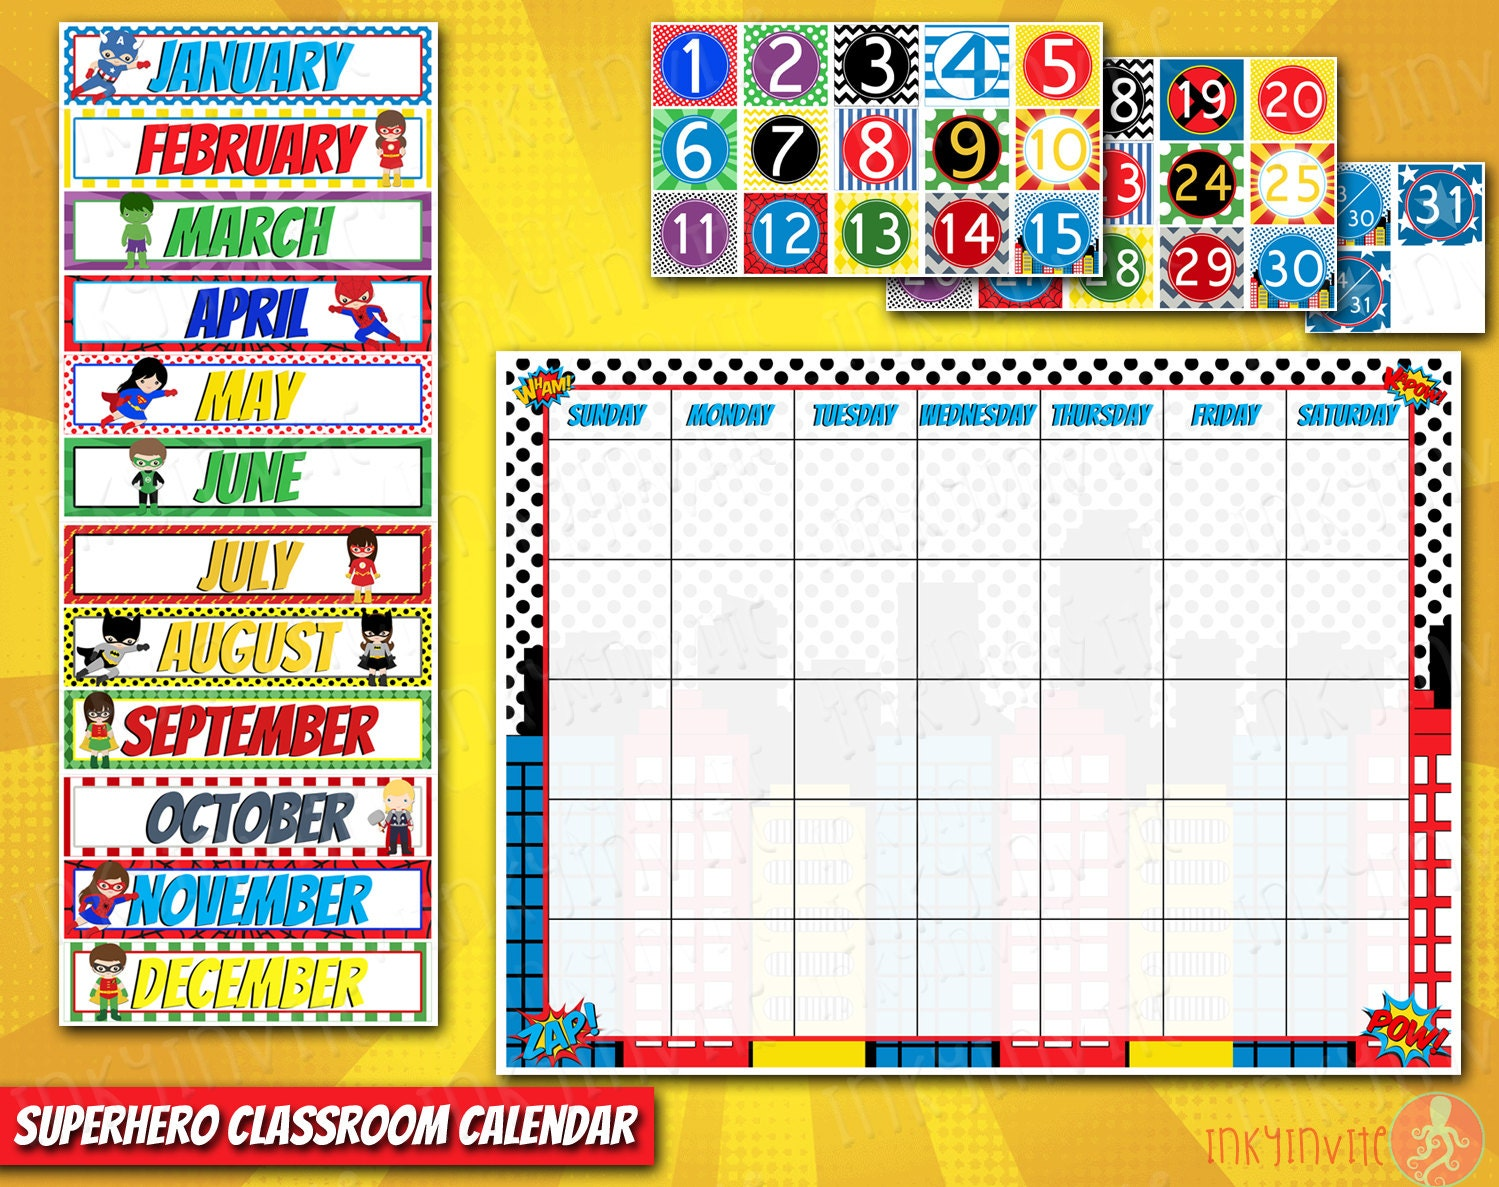 Calendar Ideas For Classroom : Superhero classroom calendar pre school